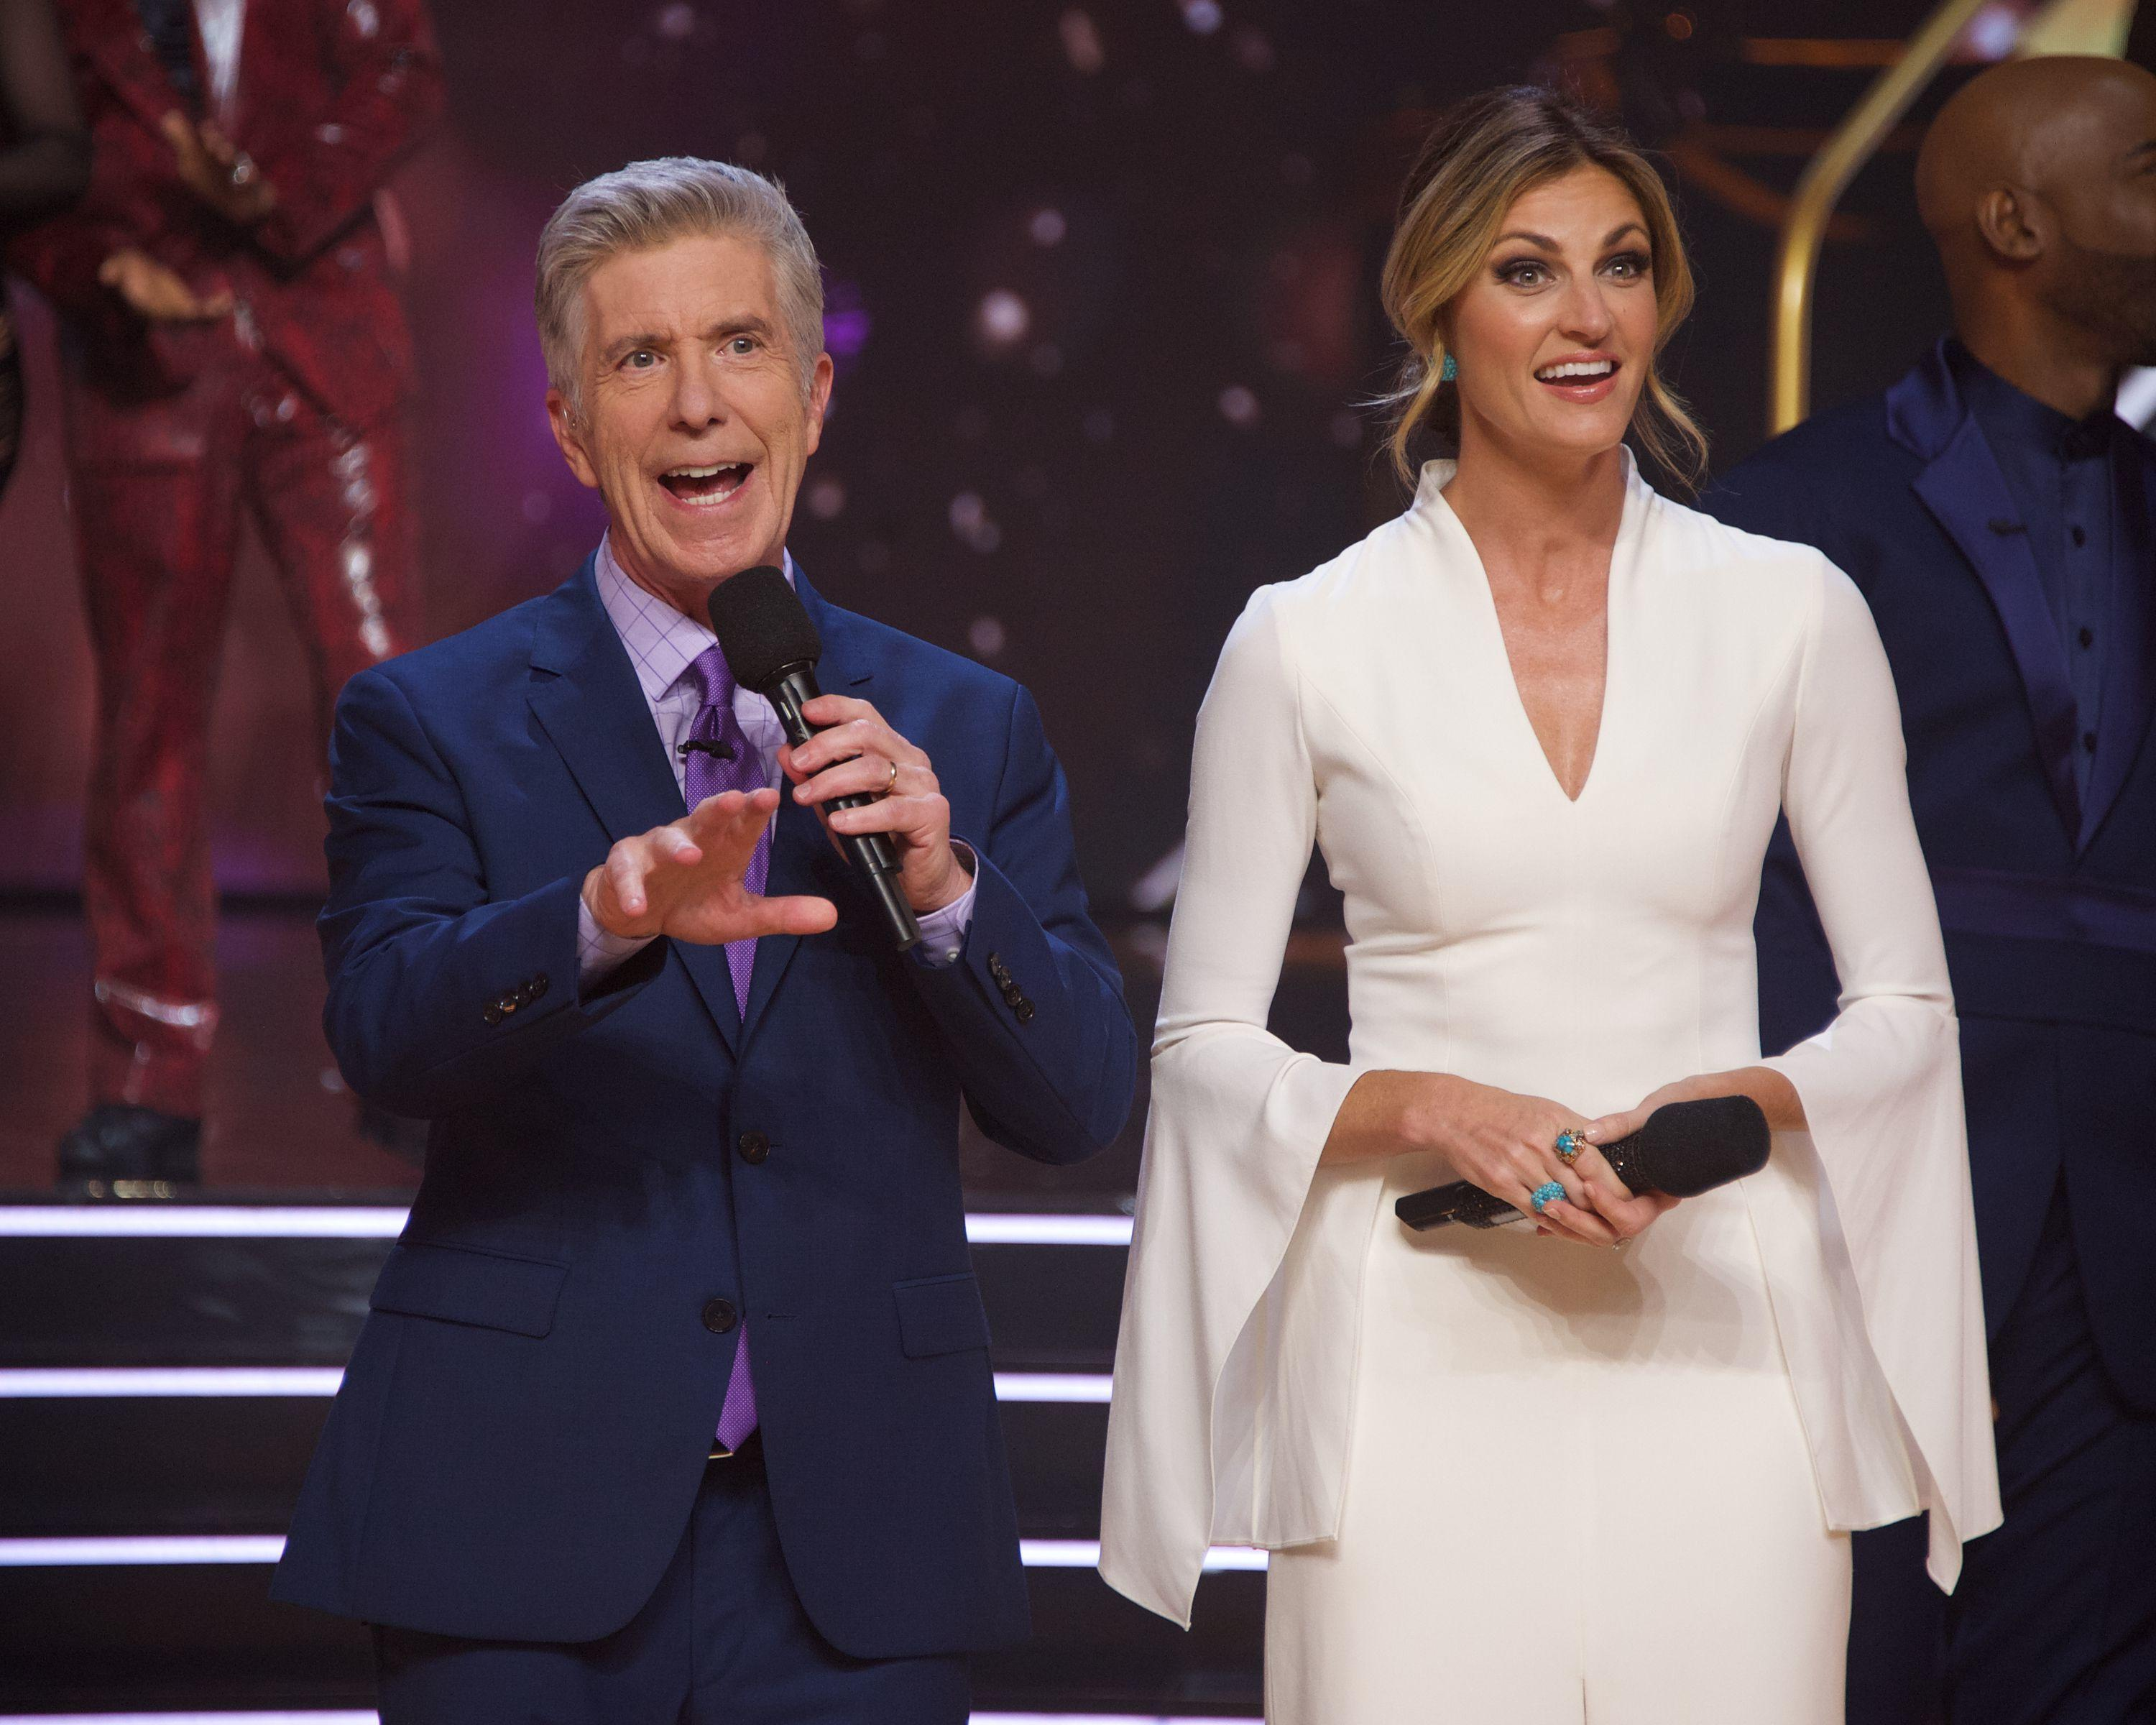 Tyra Banks named new host of 'Dancing with the Stars' after Tom Bergeron, Erin Andrews exit